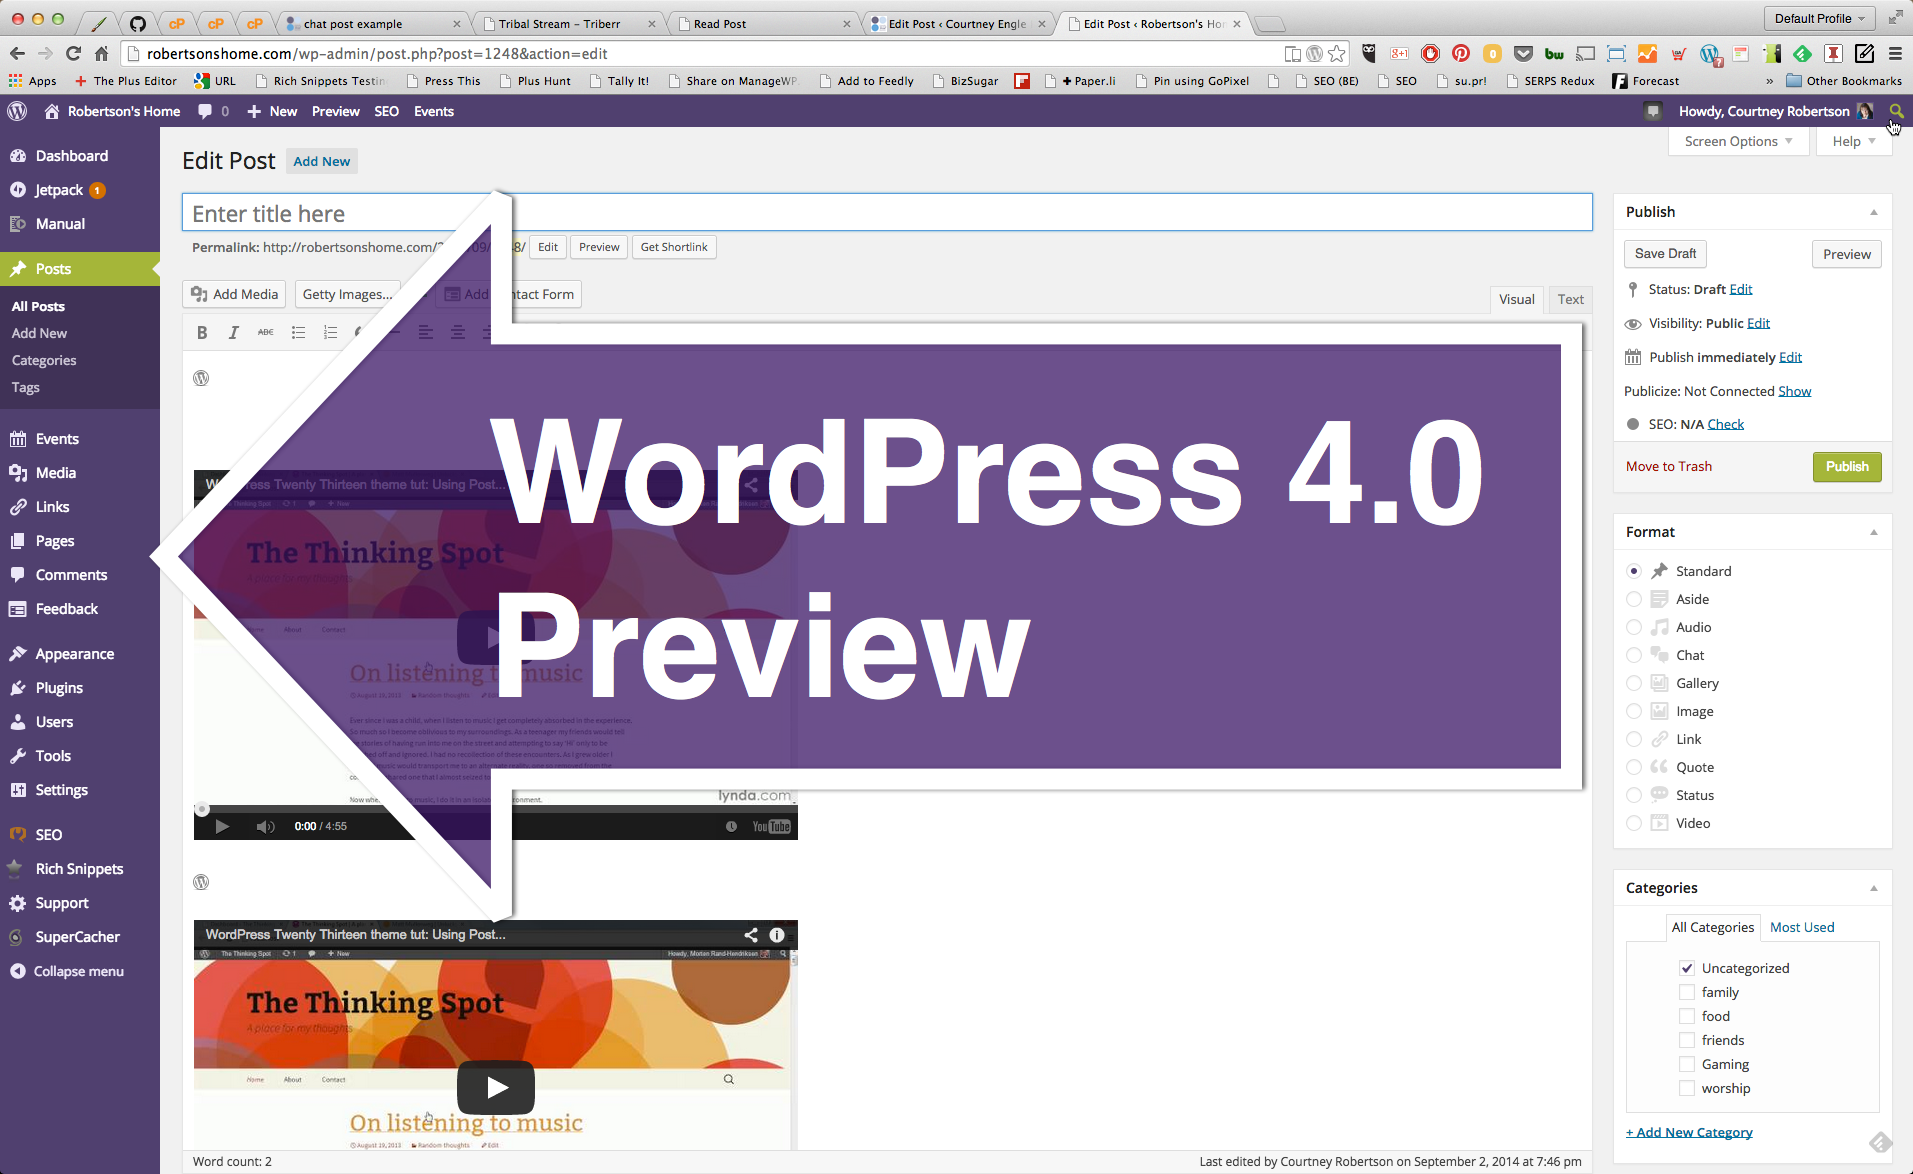 #WordPress 4.0 Preview